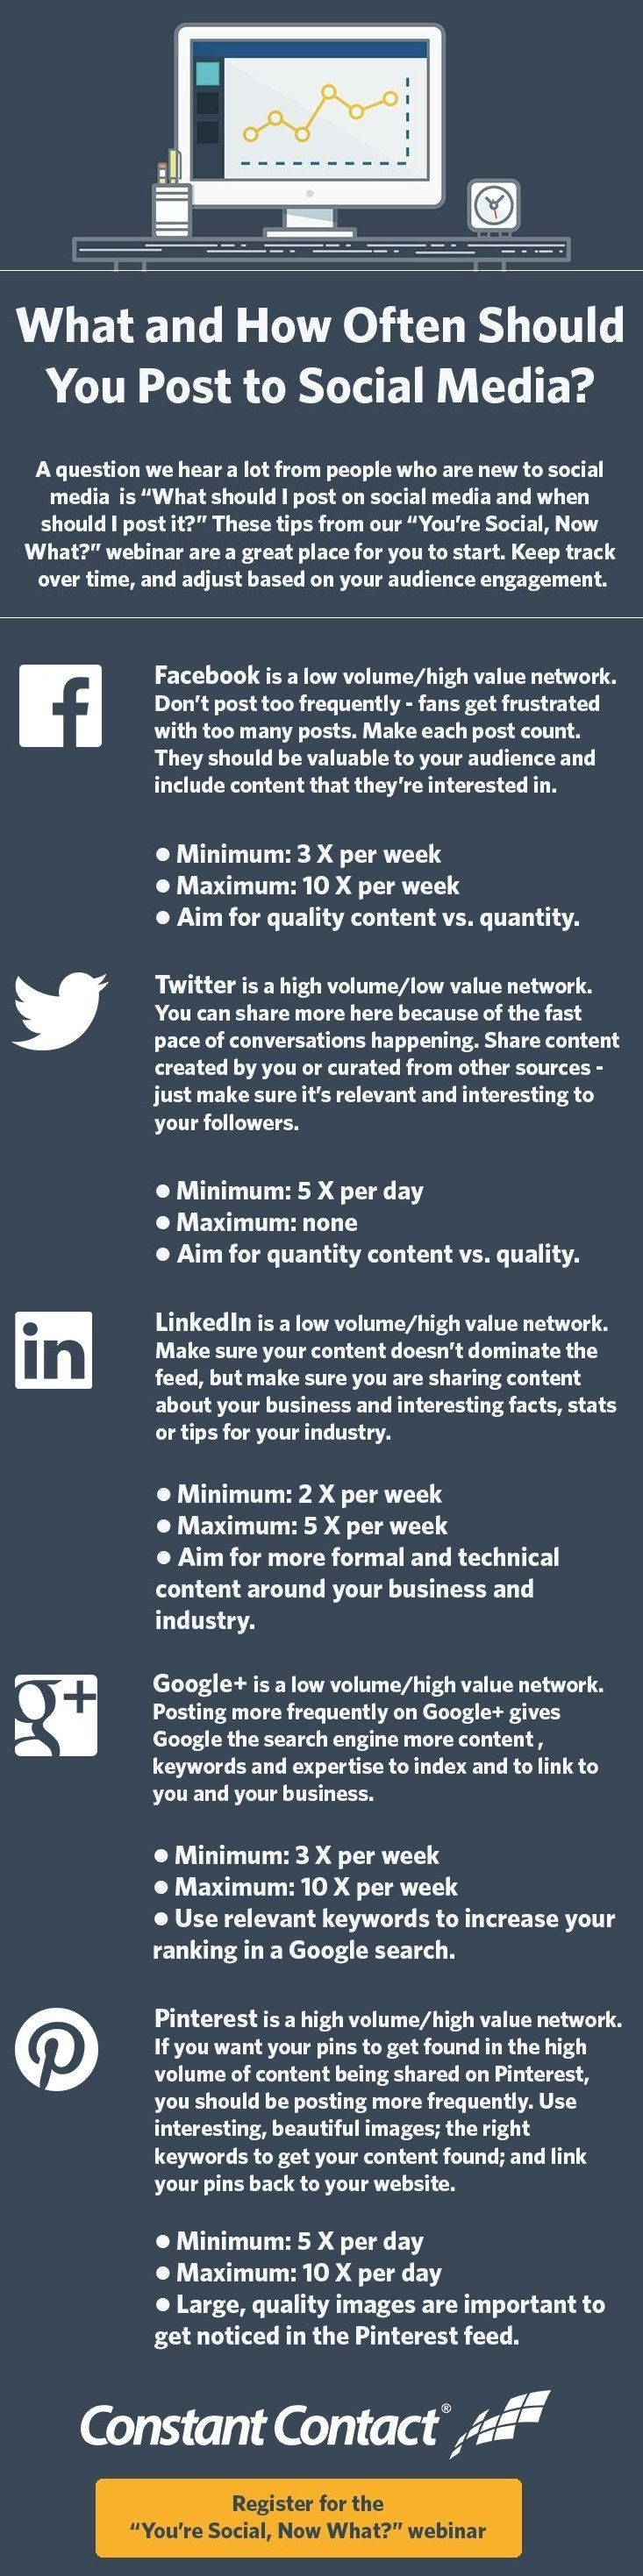 What And How Often You Should Post To Social Media - #infographic